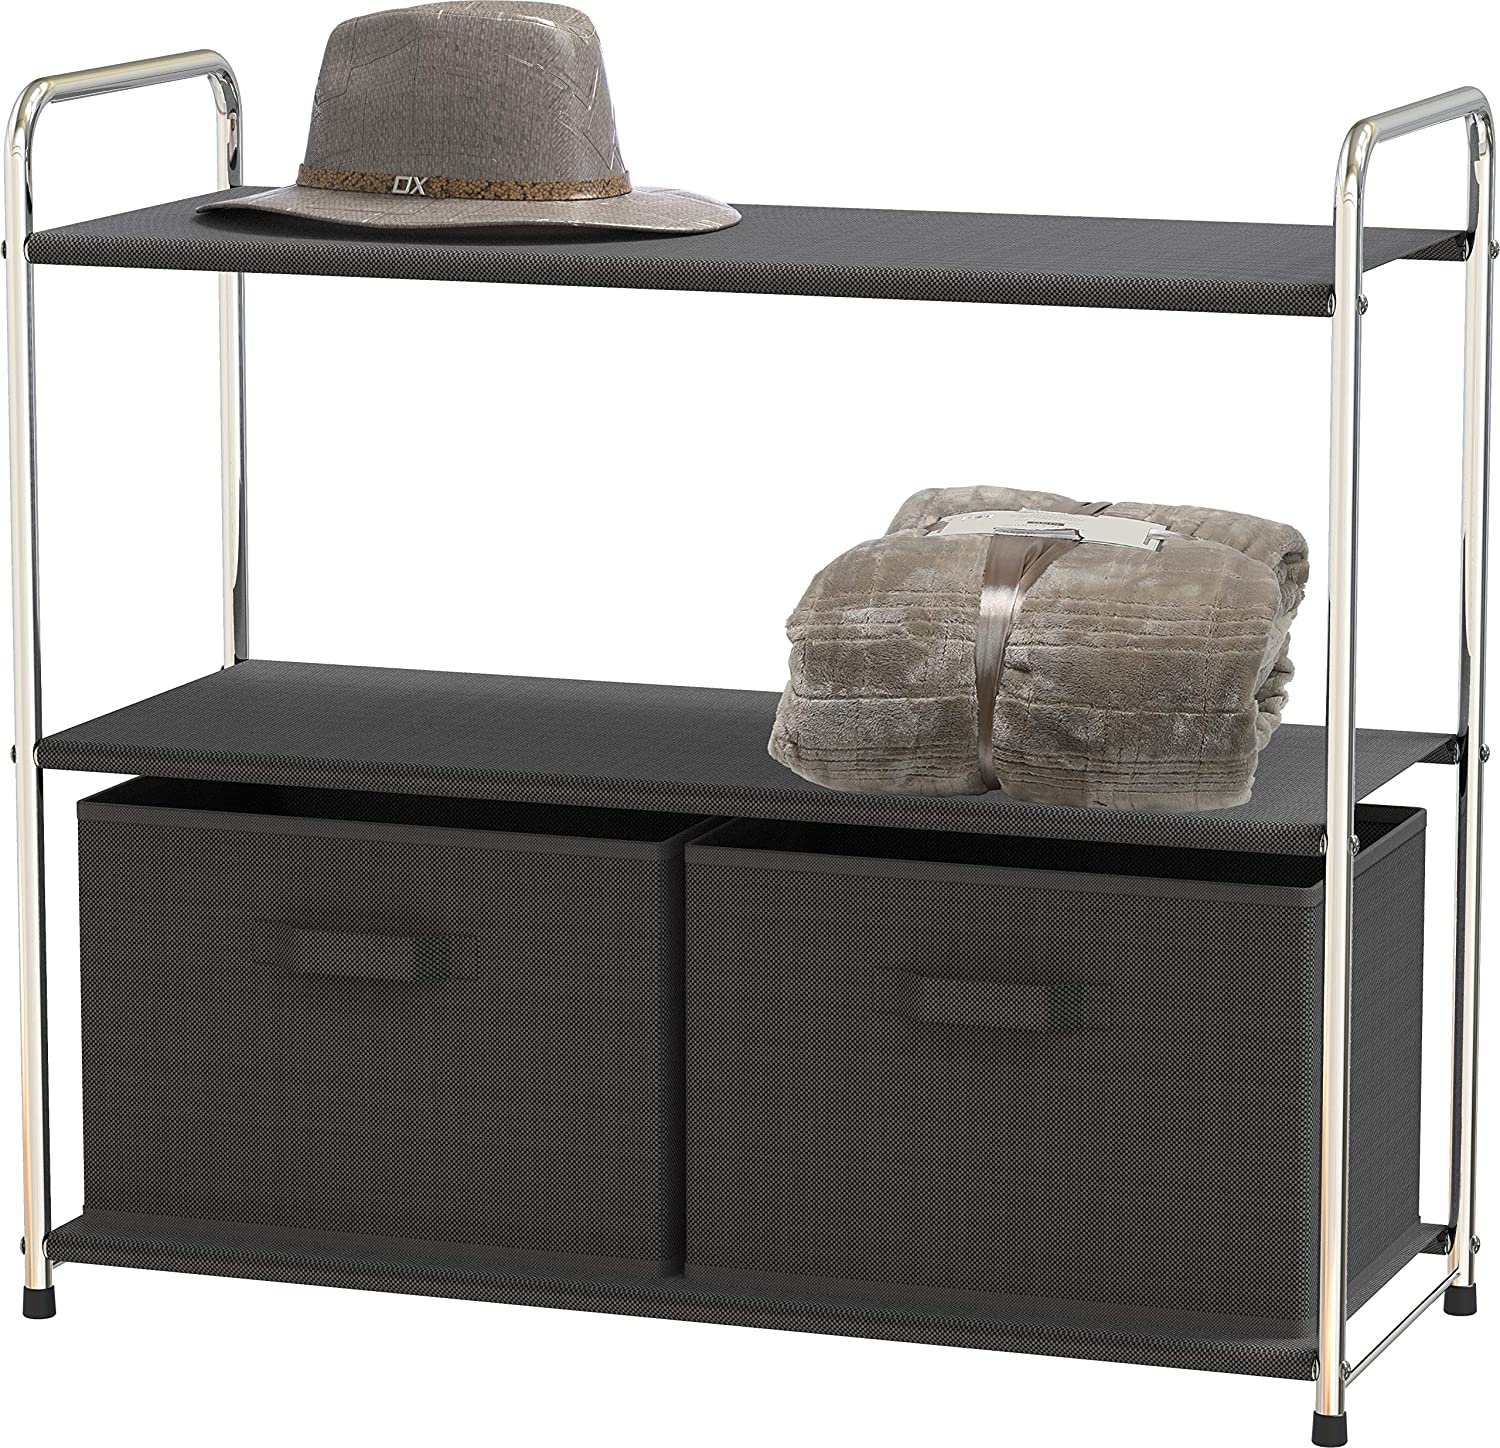 Simple Recommended Houseware 3-Tier Closet Storage with Grey Drawers 2 Kansas City Mall Dark